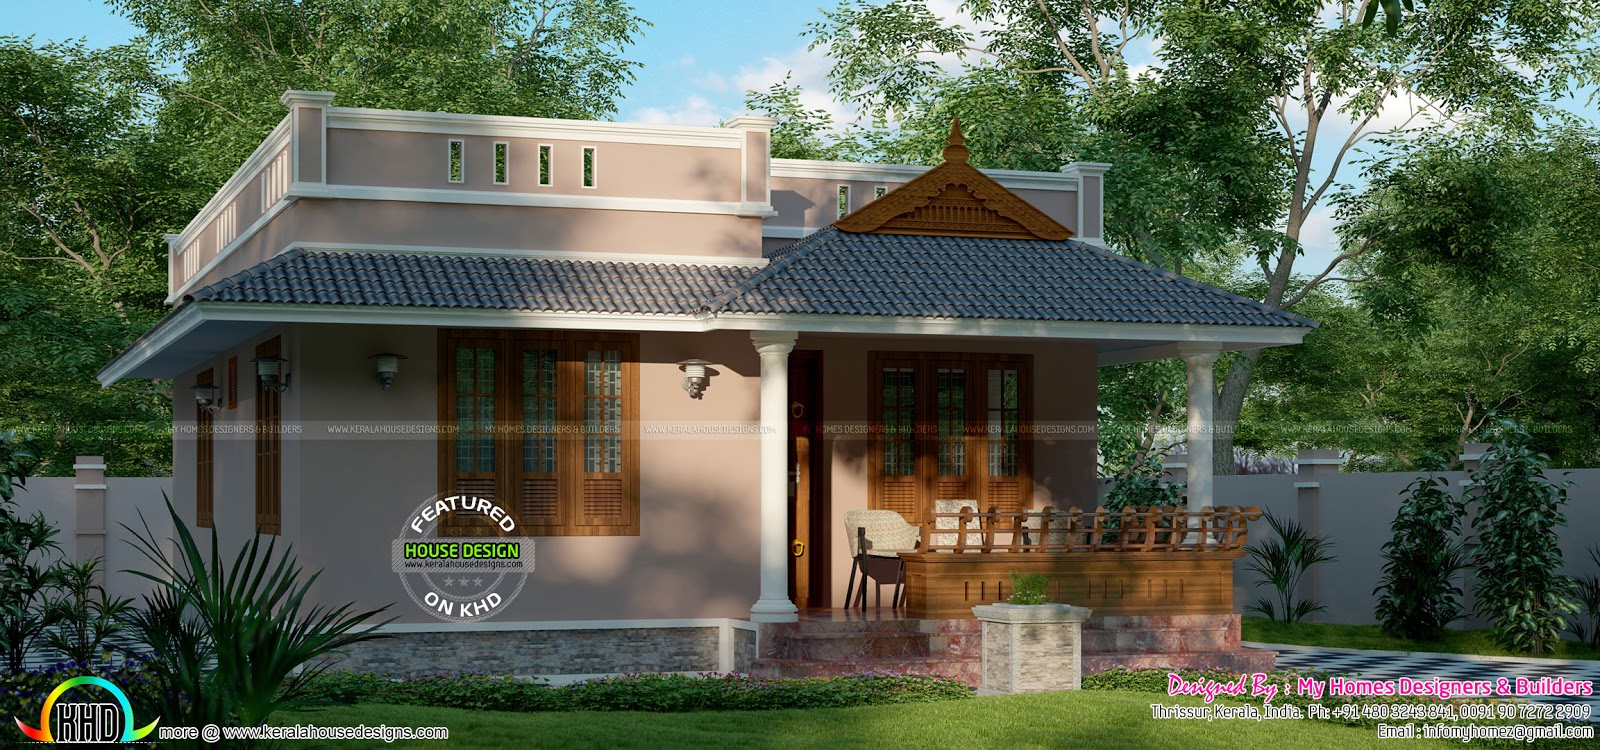 12 lakhs budget kerala home design kerala home design